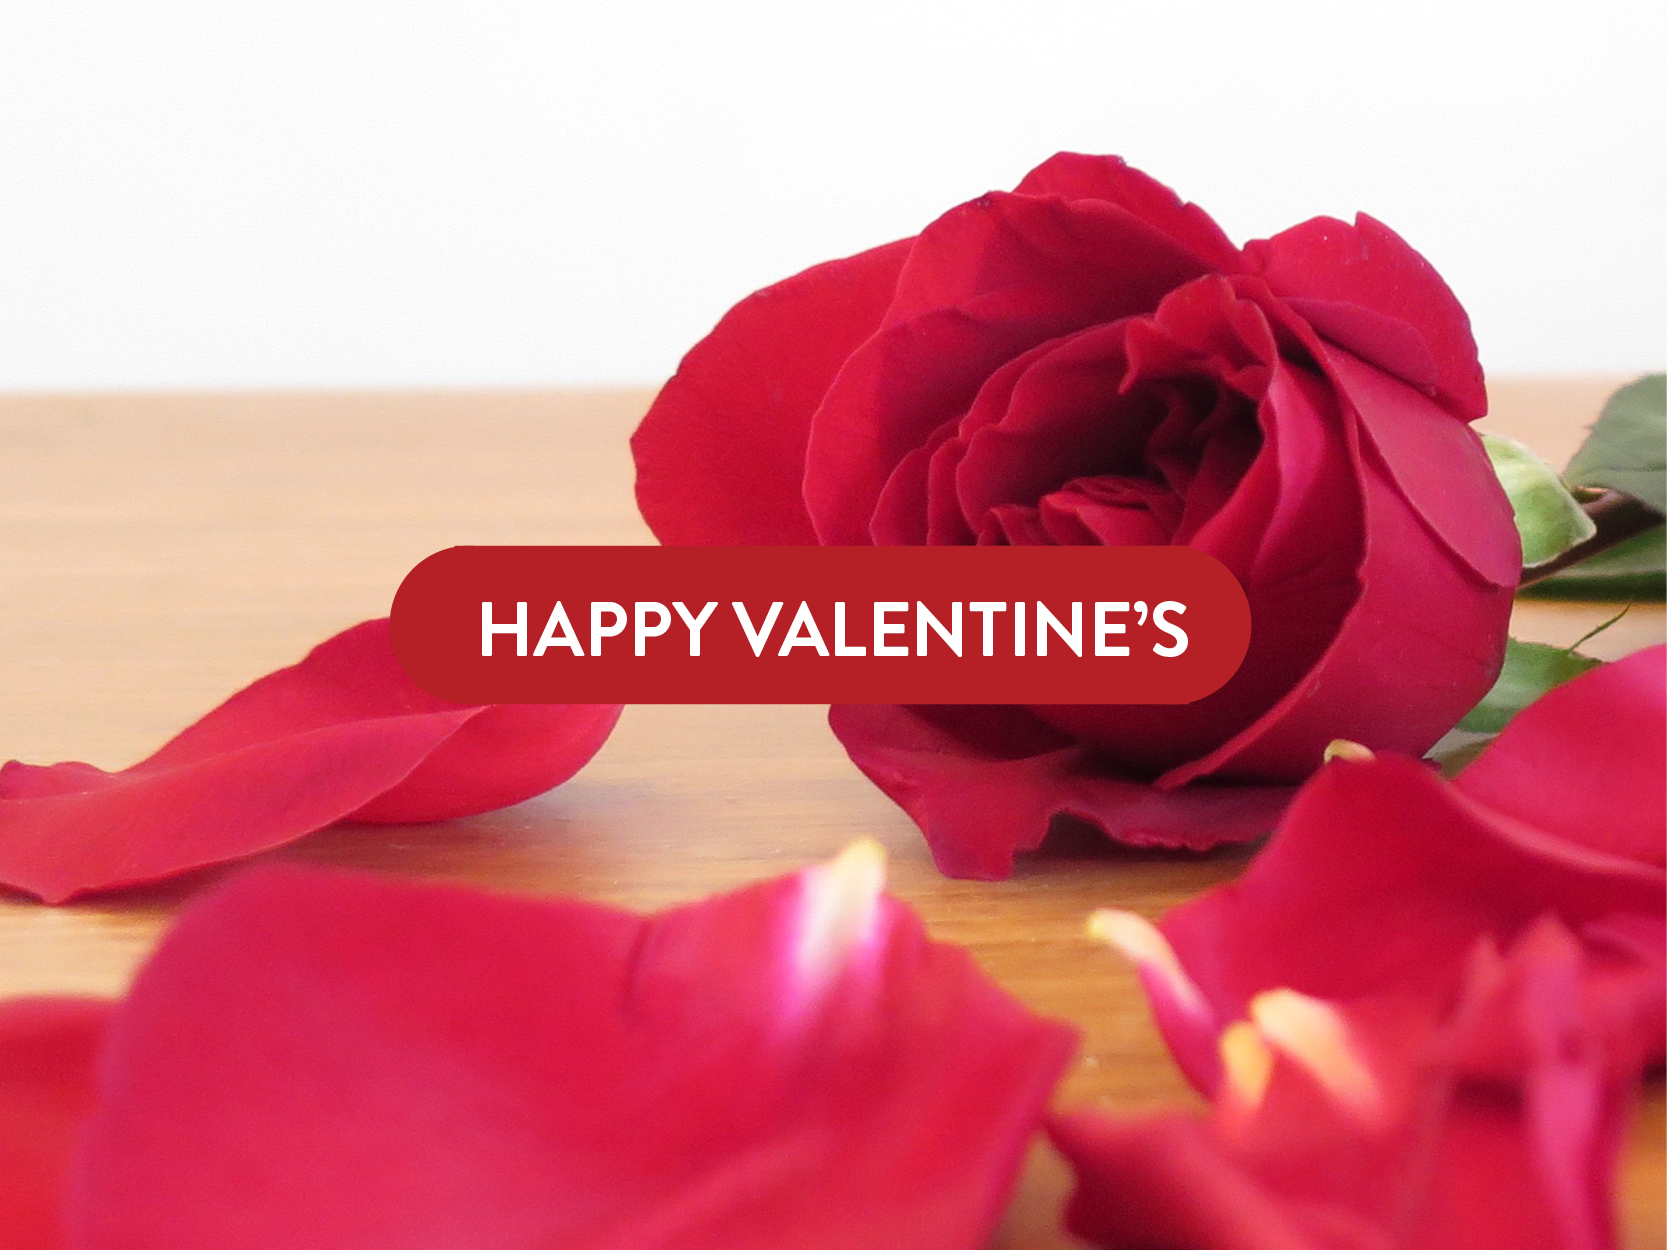 Hong Kong | Get a FREE Rose with Every Order this Valentine's Day